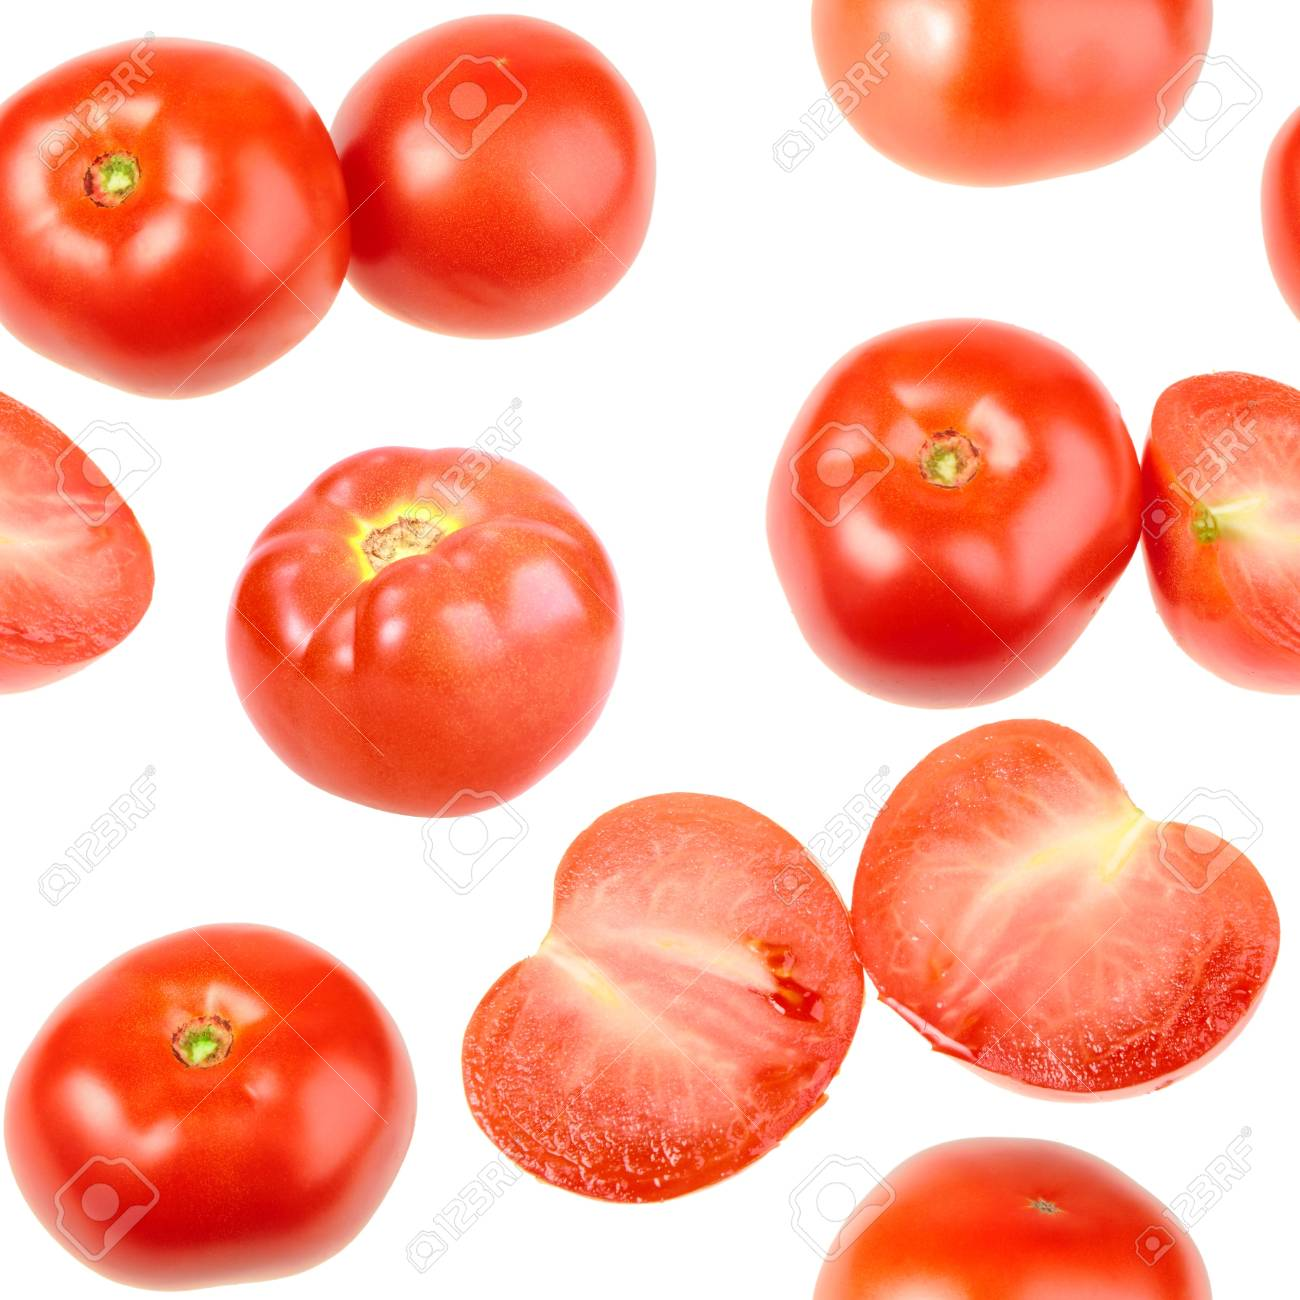 Abstract background with red fresh tomatos. Isolated on white. Seamless pattern for your design. Close-up. Studio photography. Stock Photo - 13659088